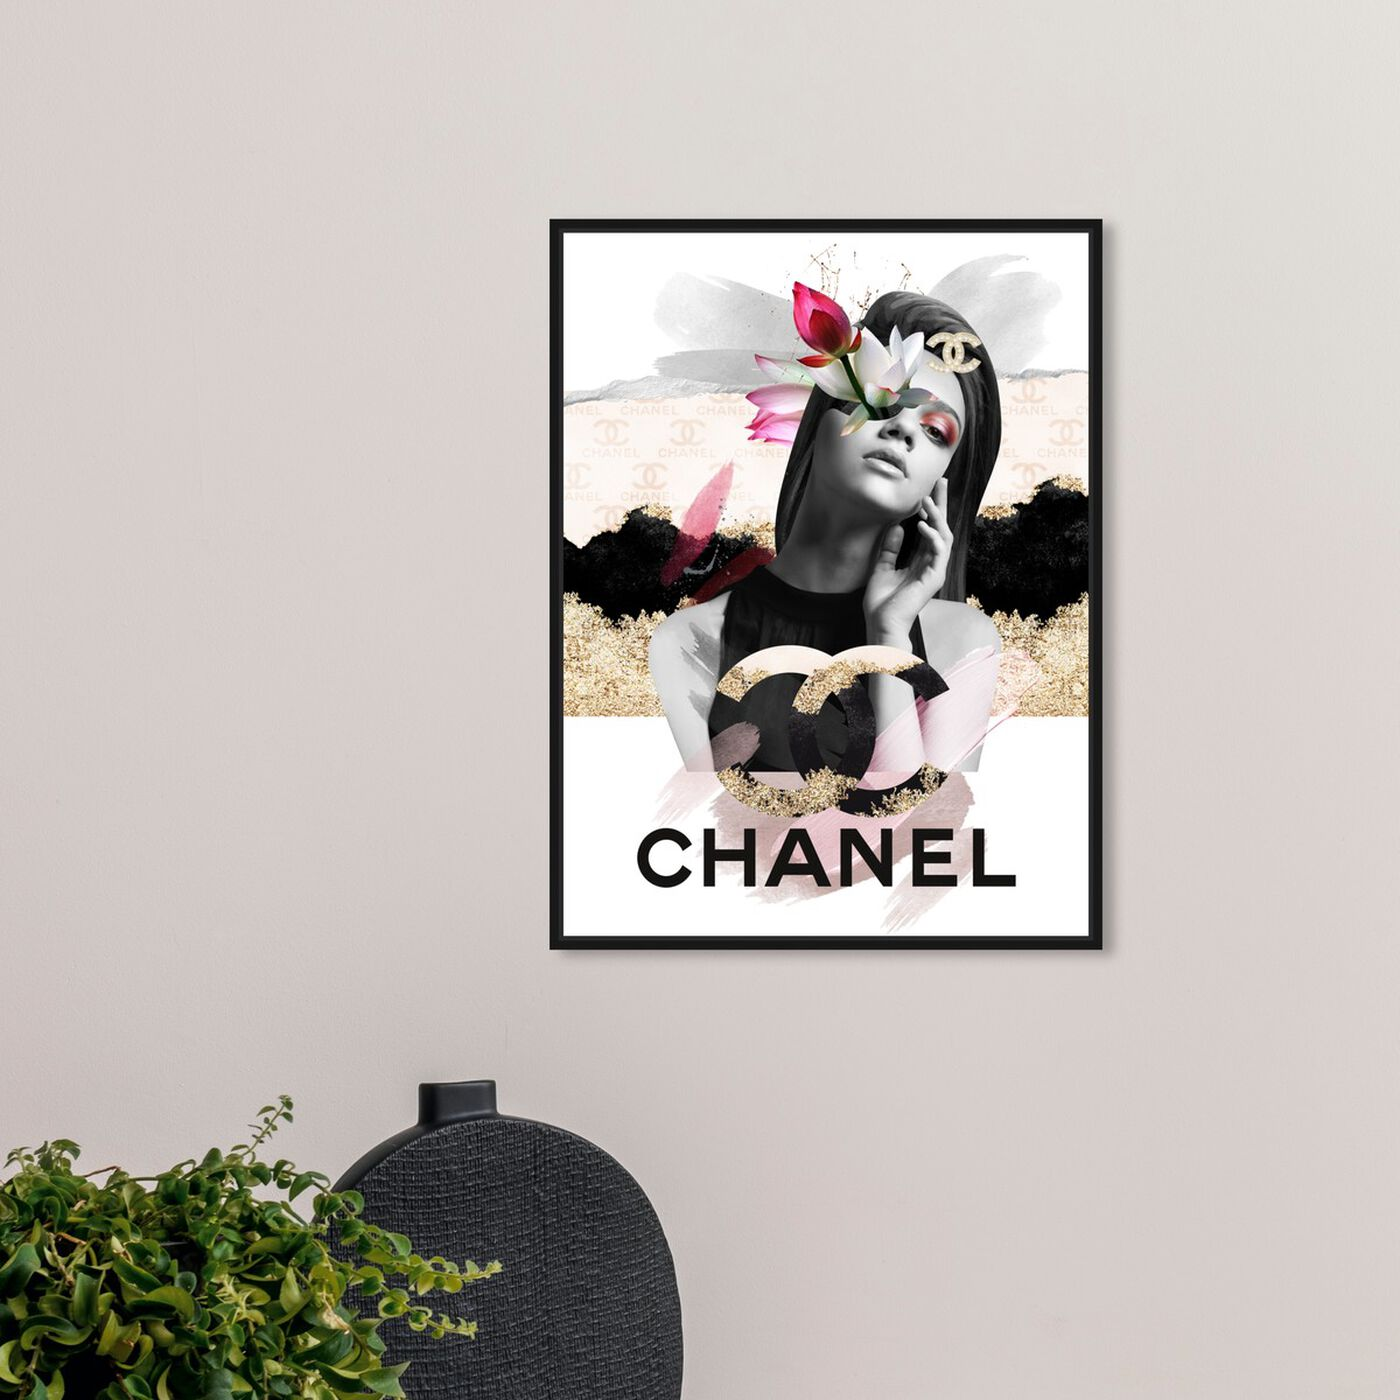 Hanging view of Trendy Lady I featuring fashion and glam and lifestyle art.